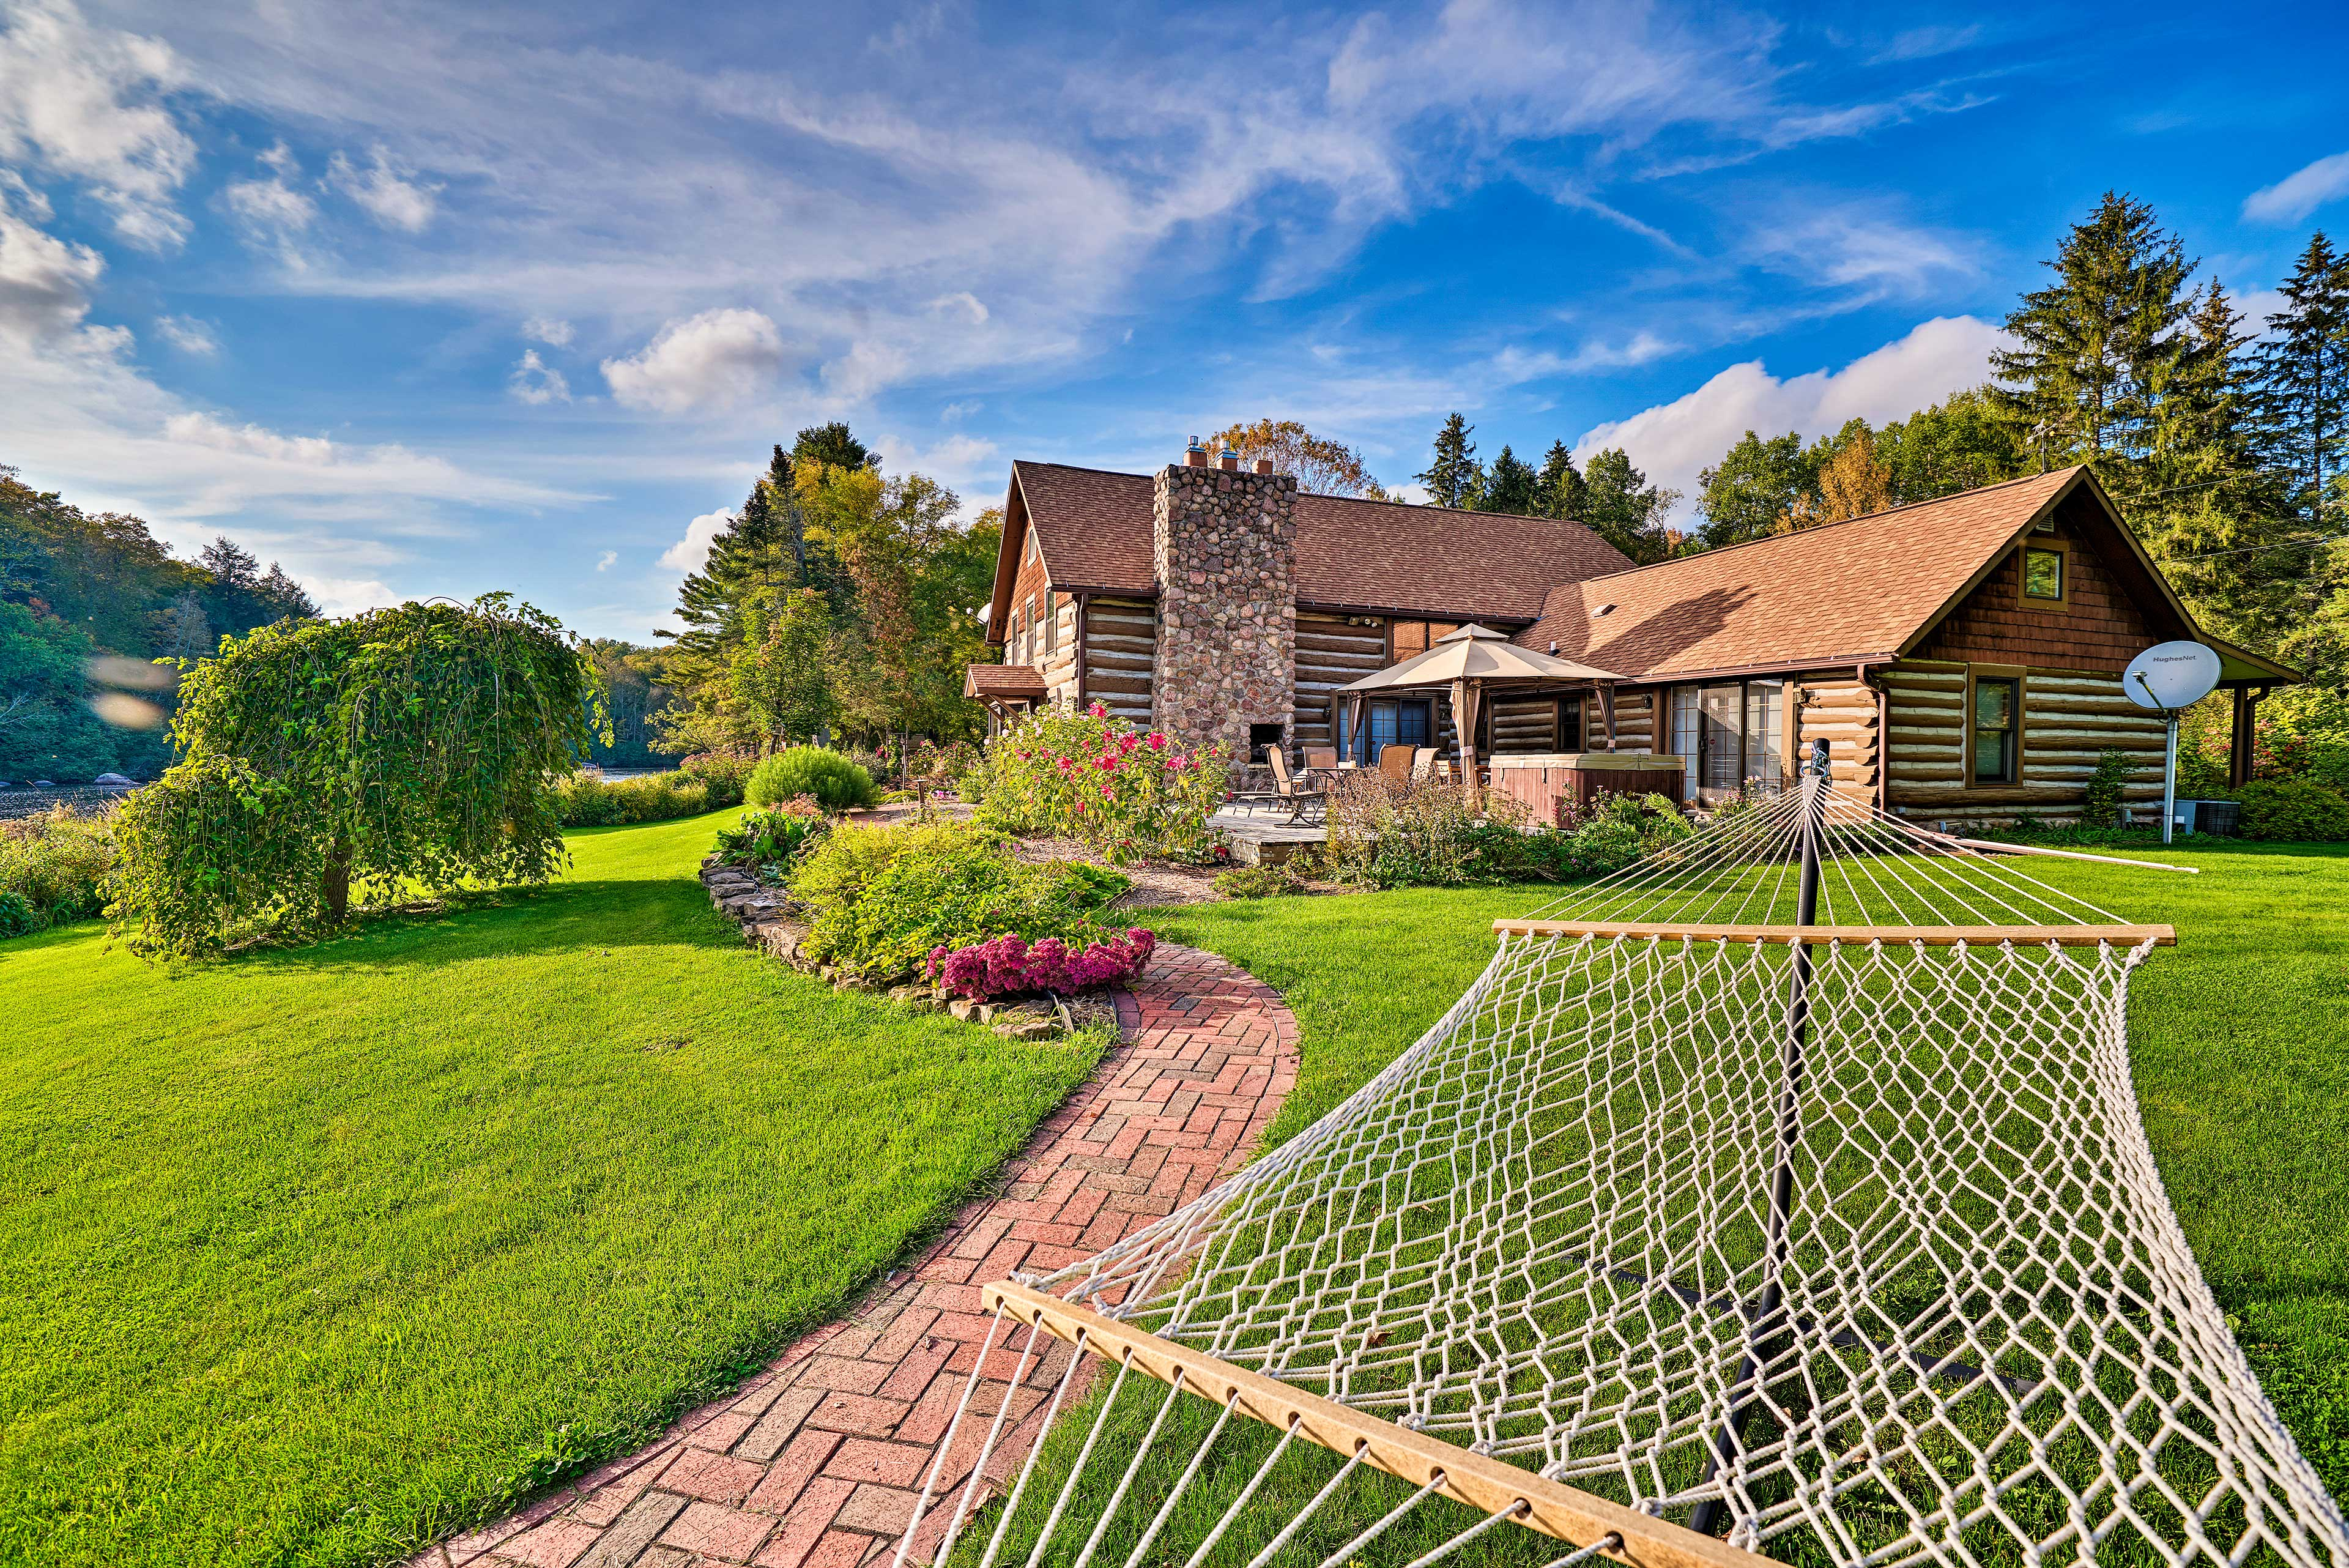 This property is sure to make you feel completely at peace.